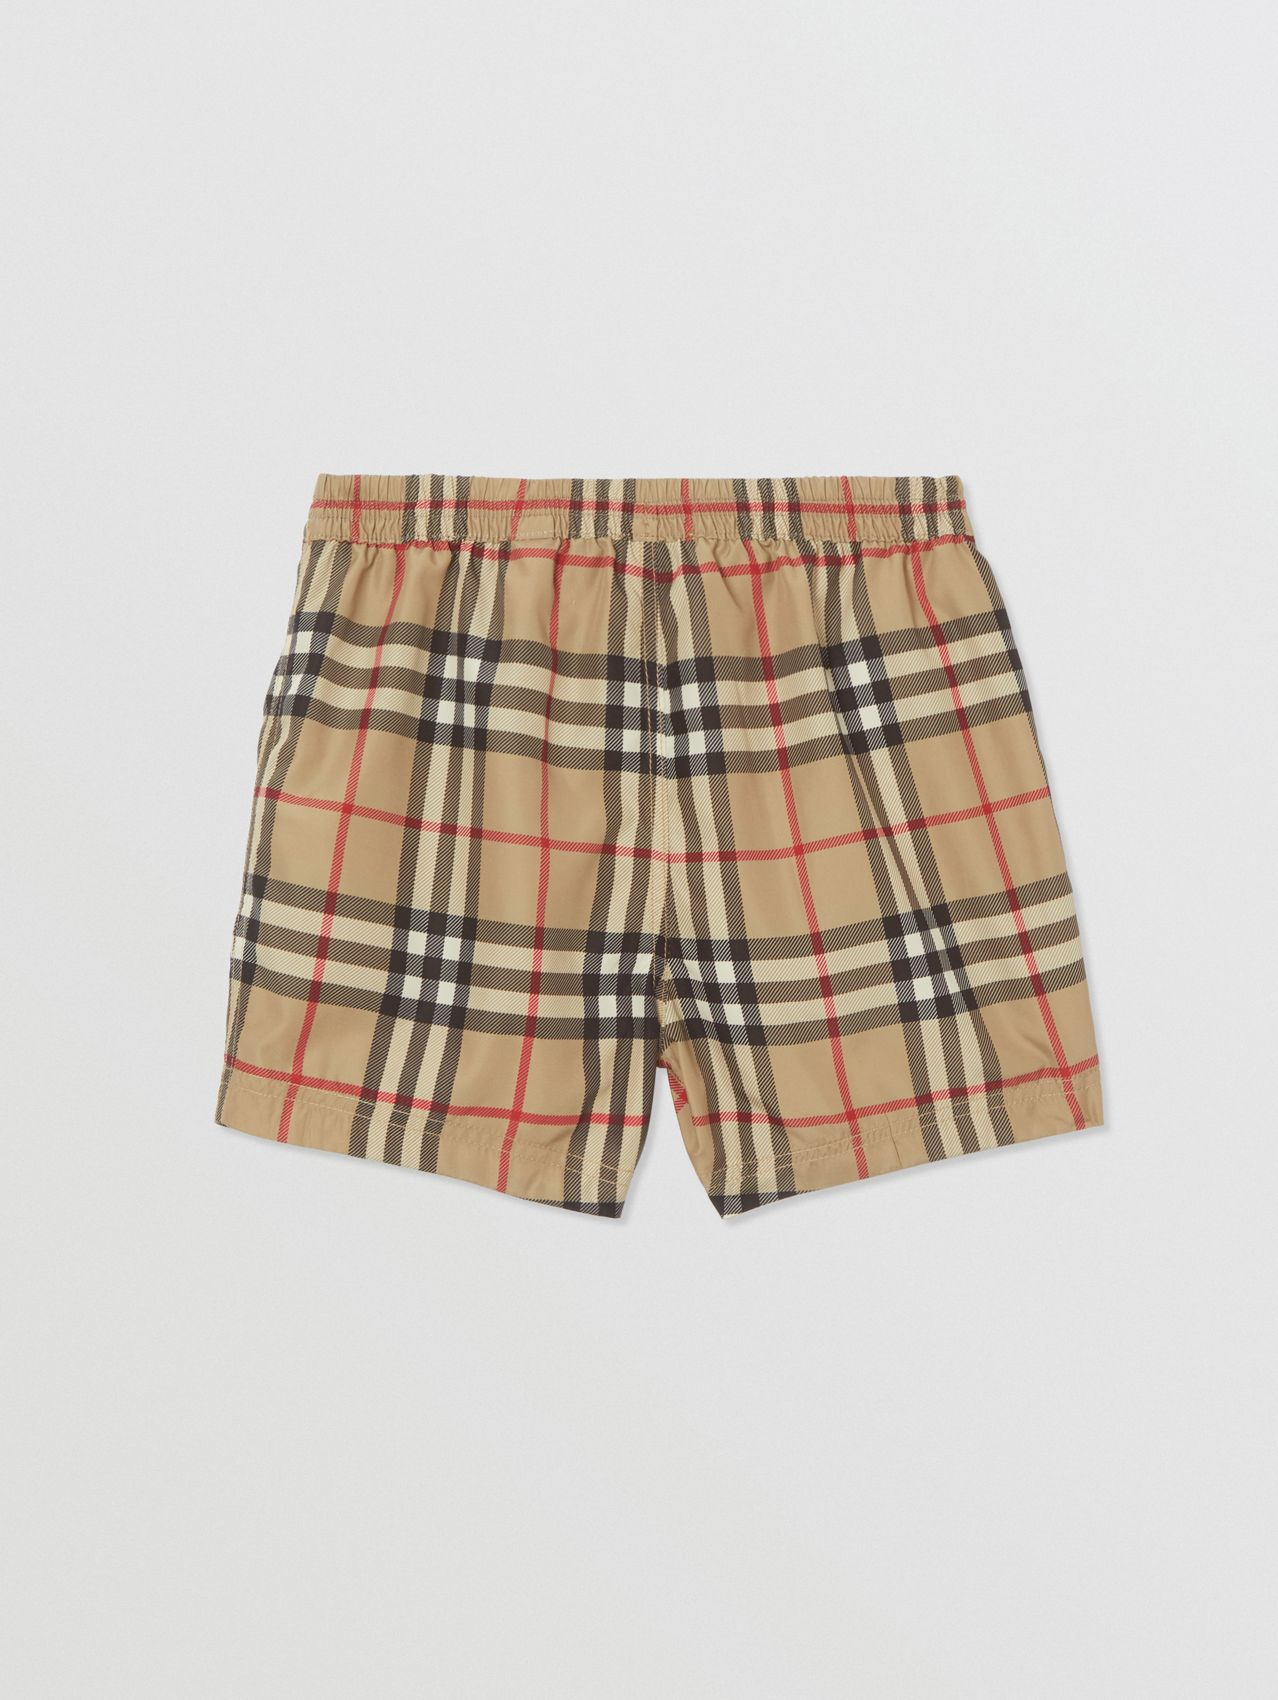 Logo Appliqué Vintage Check Swim Shorts in Archive Beige